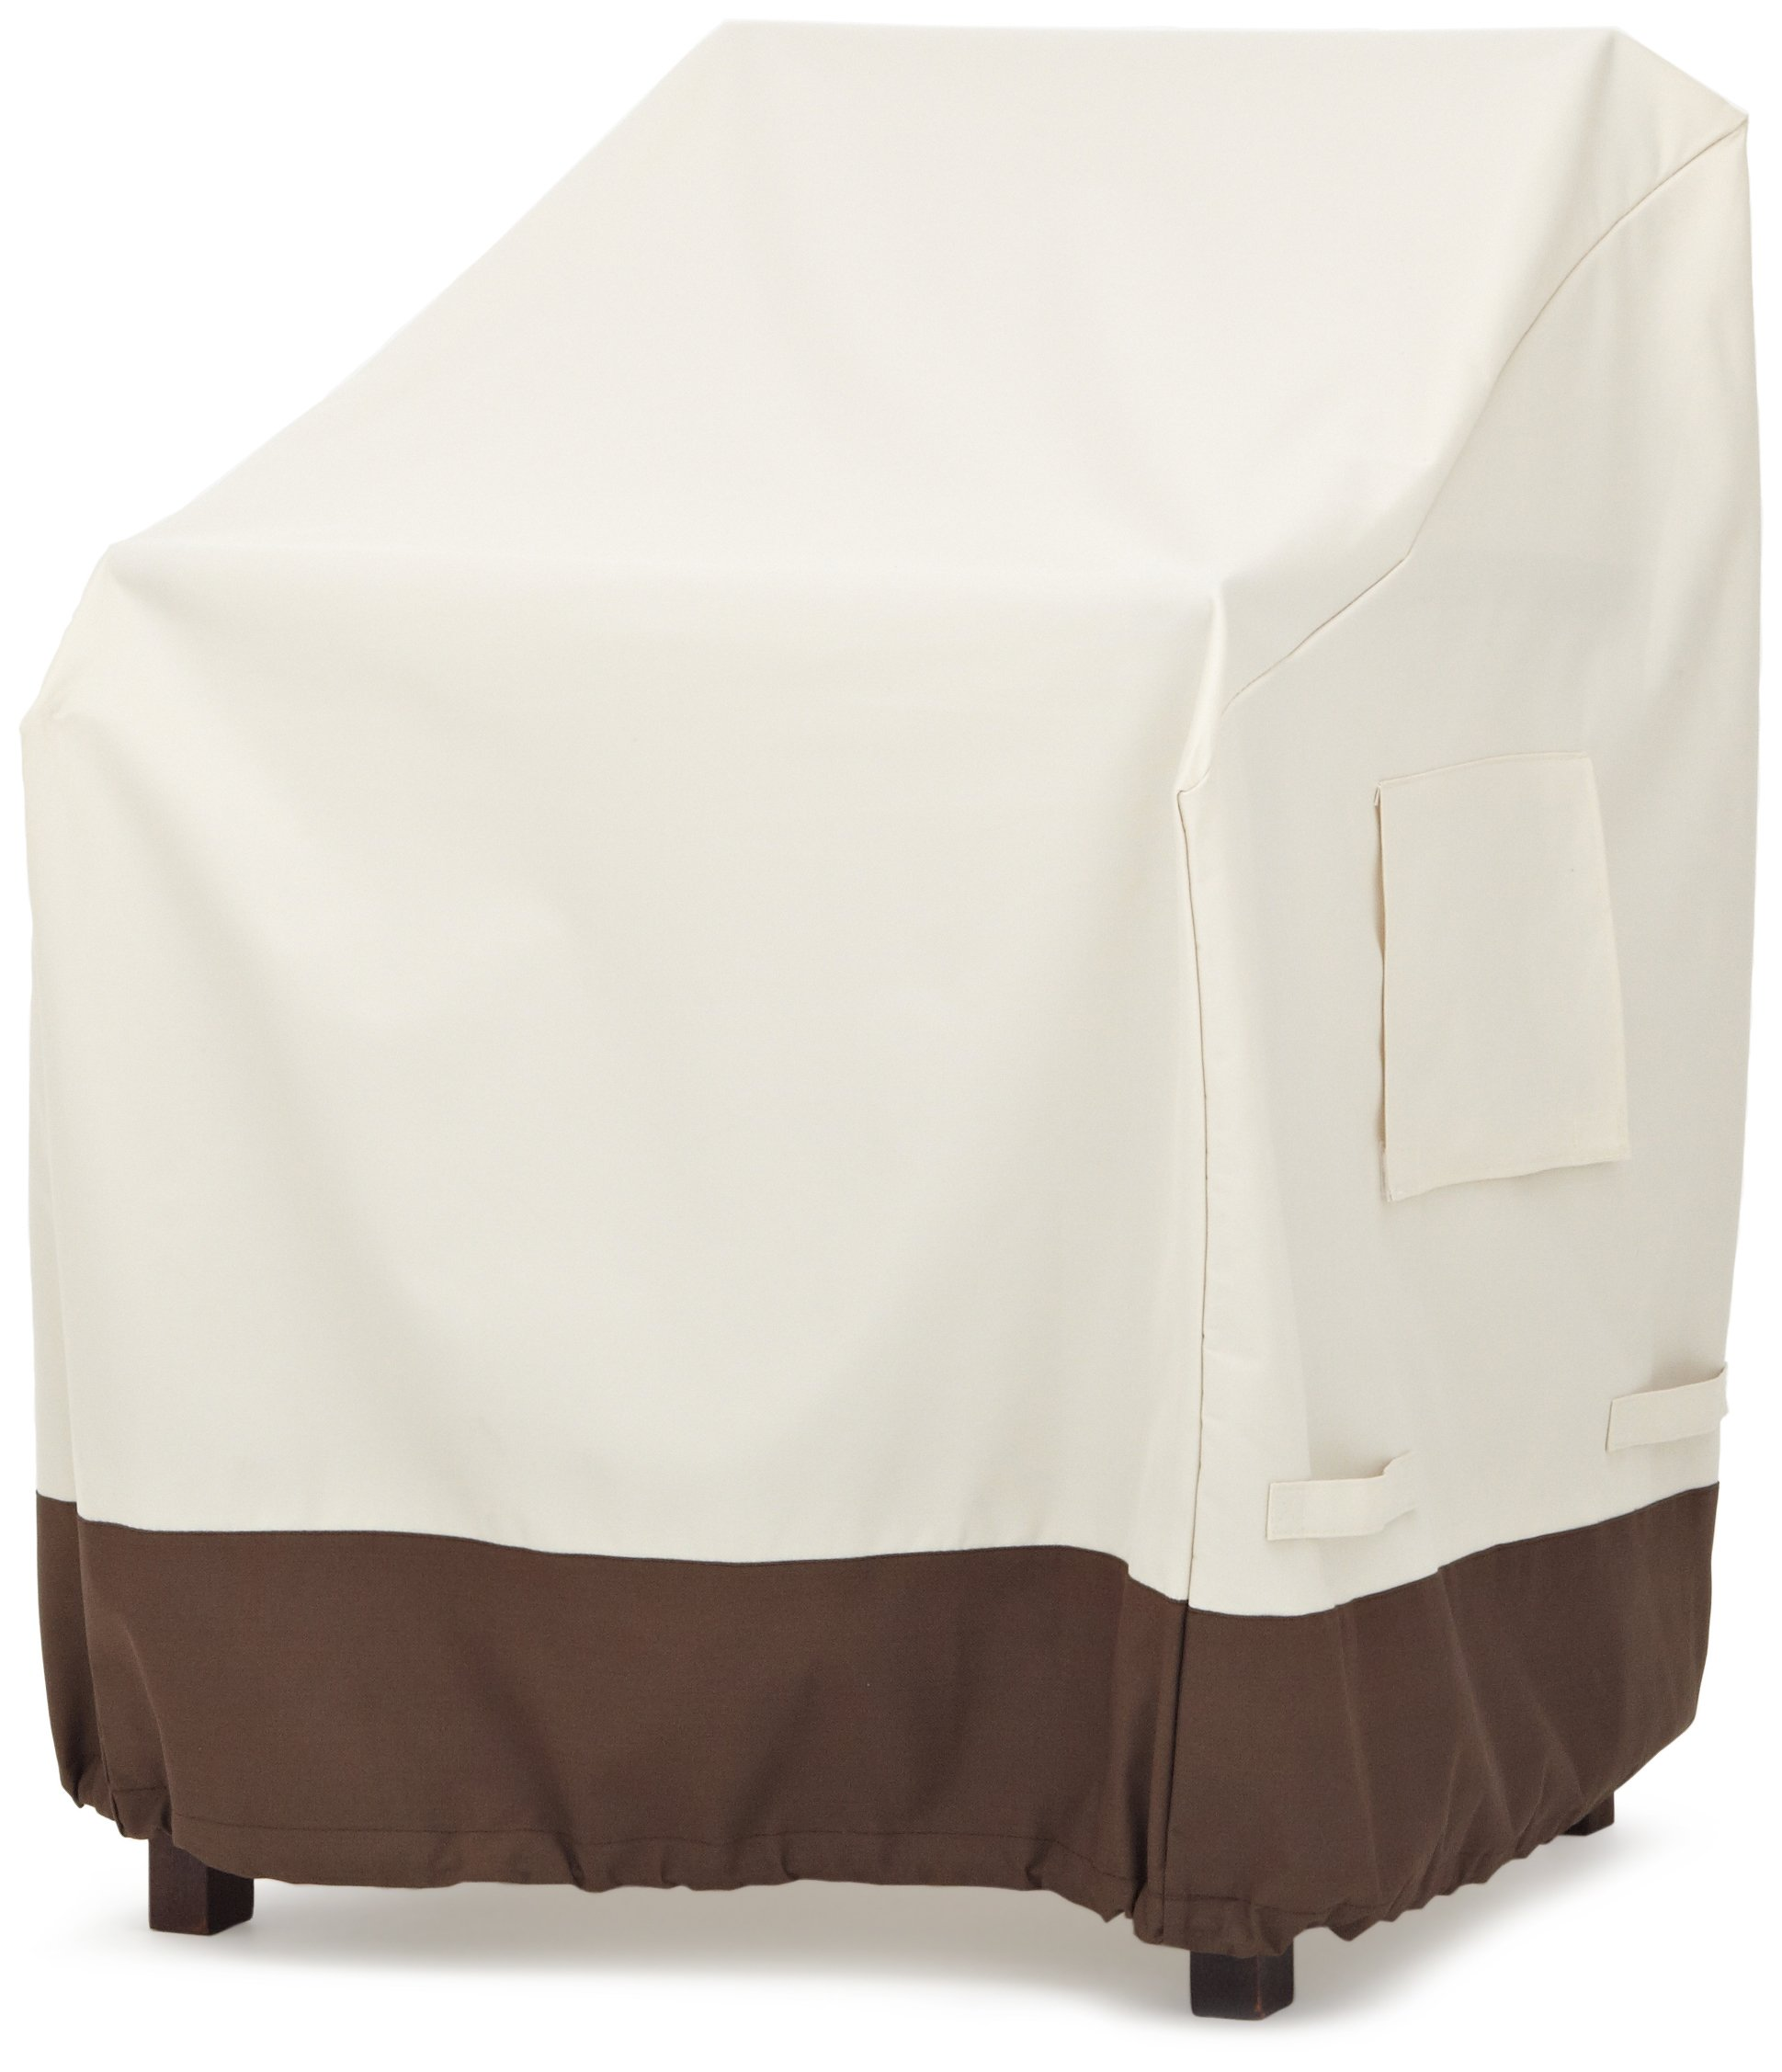 AmazonBasics Dining Arm Chair Patio Cover (Set of 2)